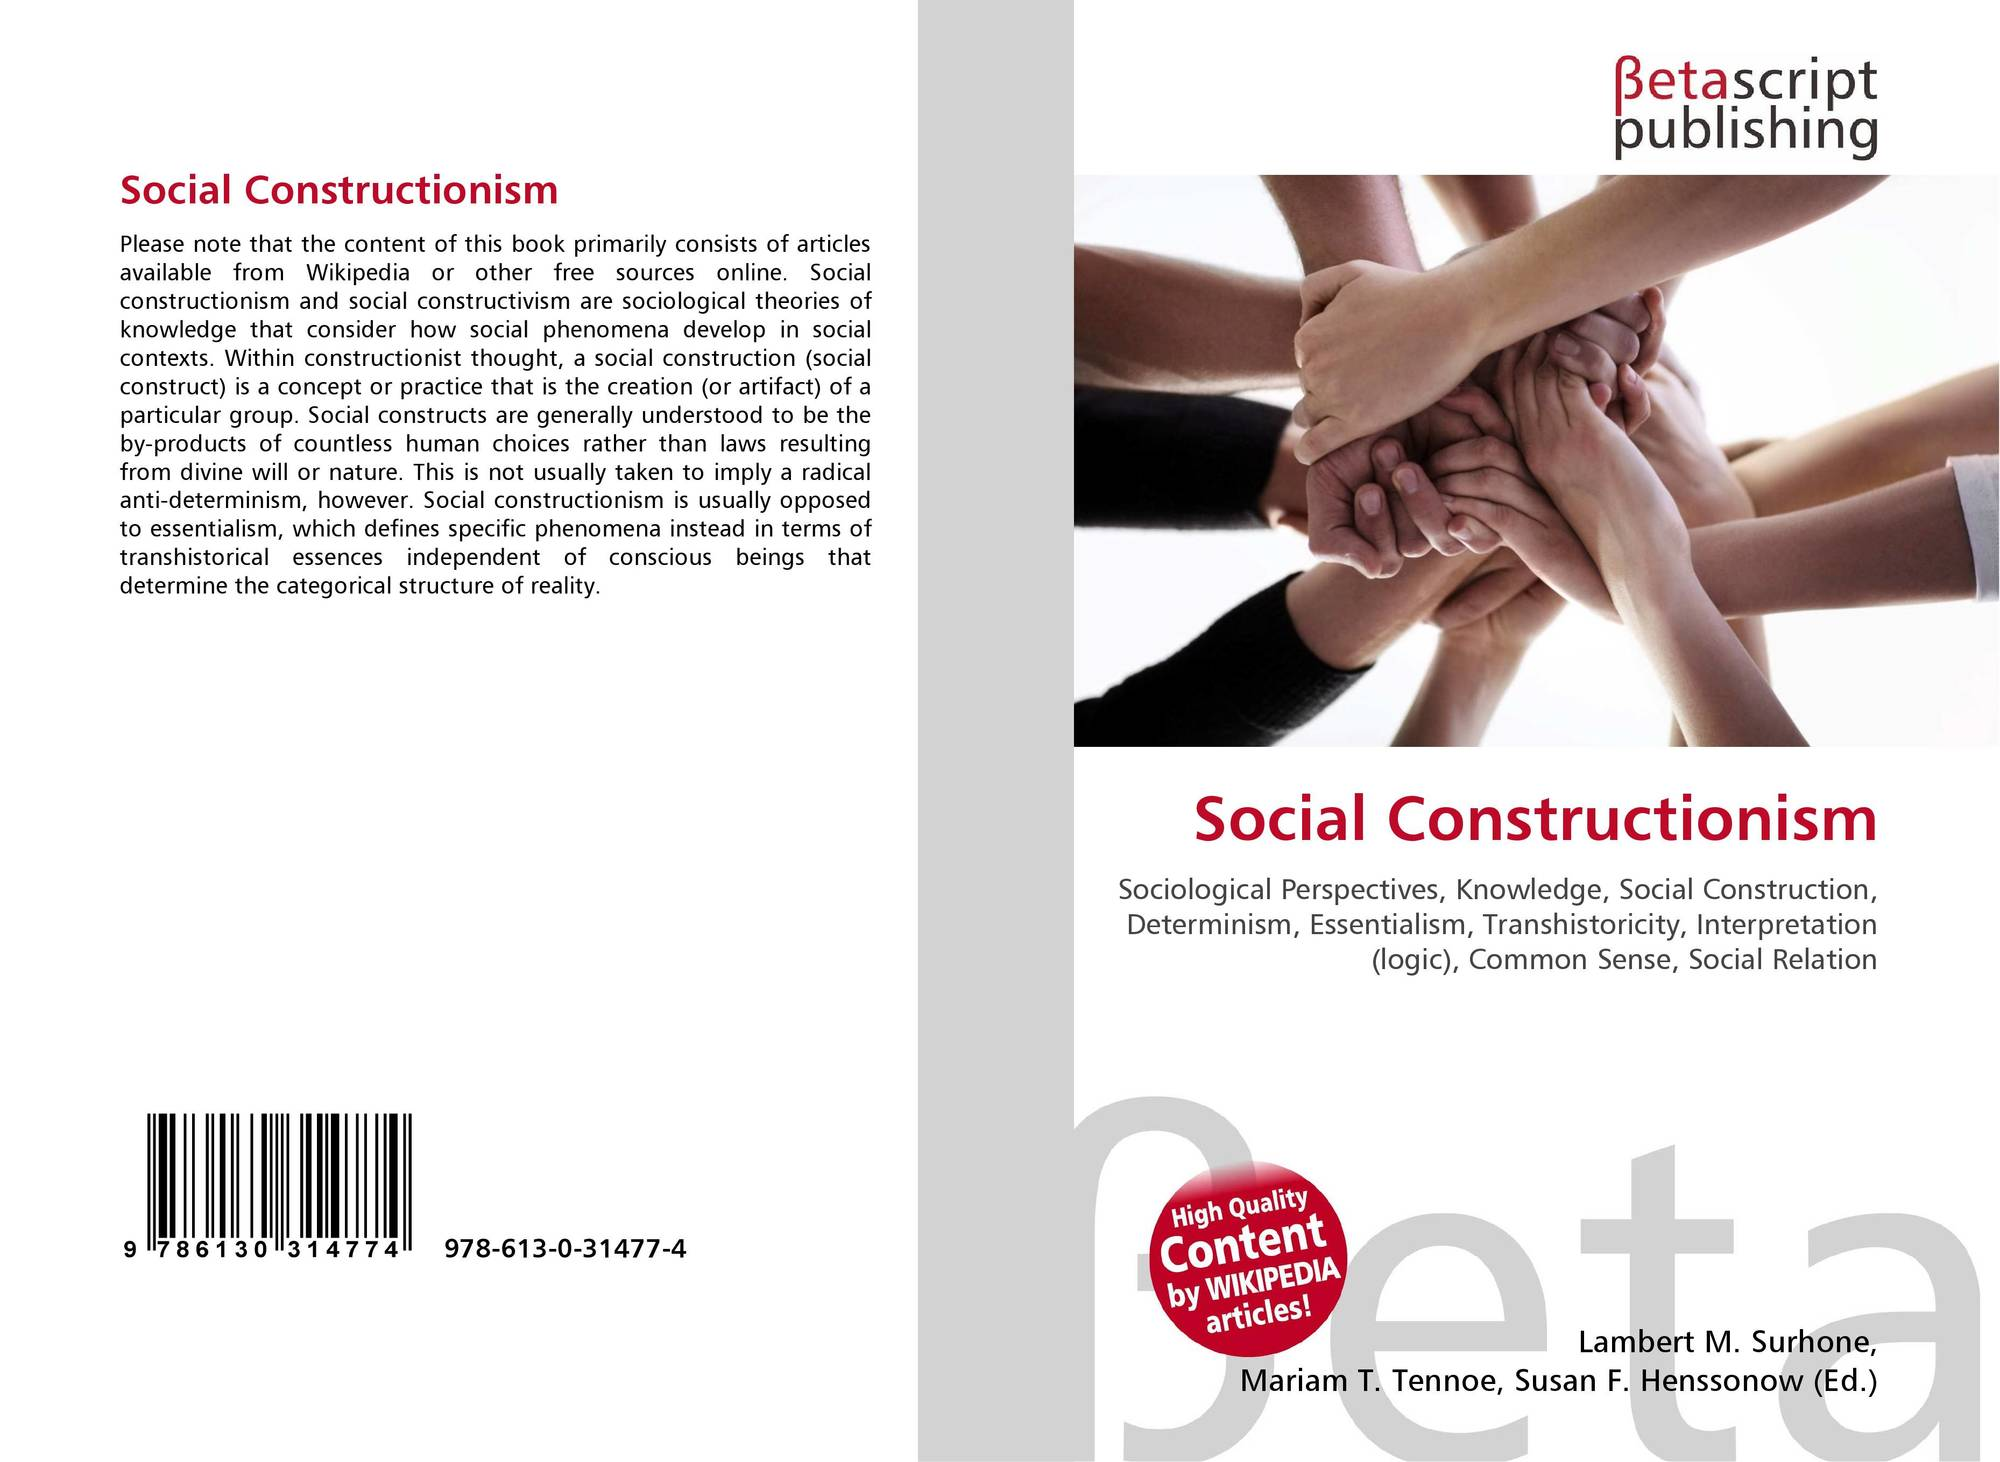 debate essentialism social construction Social structure influences human actions, but individual activities can similarly influence social structure berger and luckmann suggest that the relationship between structure and agency is one in which society forms the individuals who create society in a continuous dialectic.